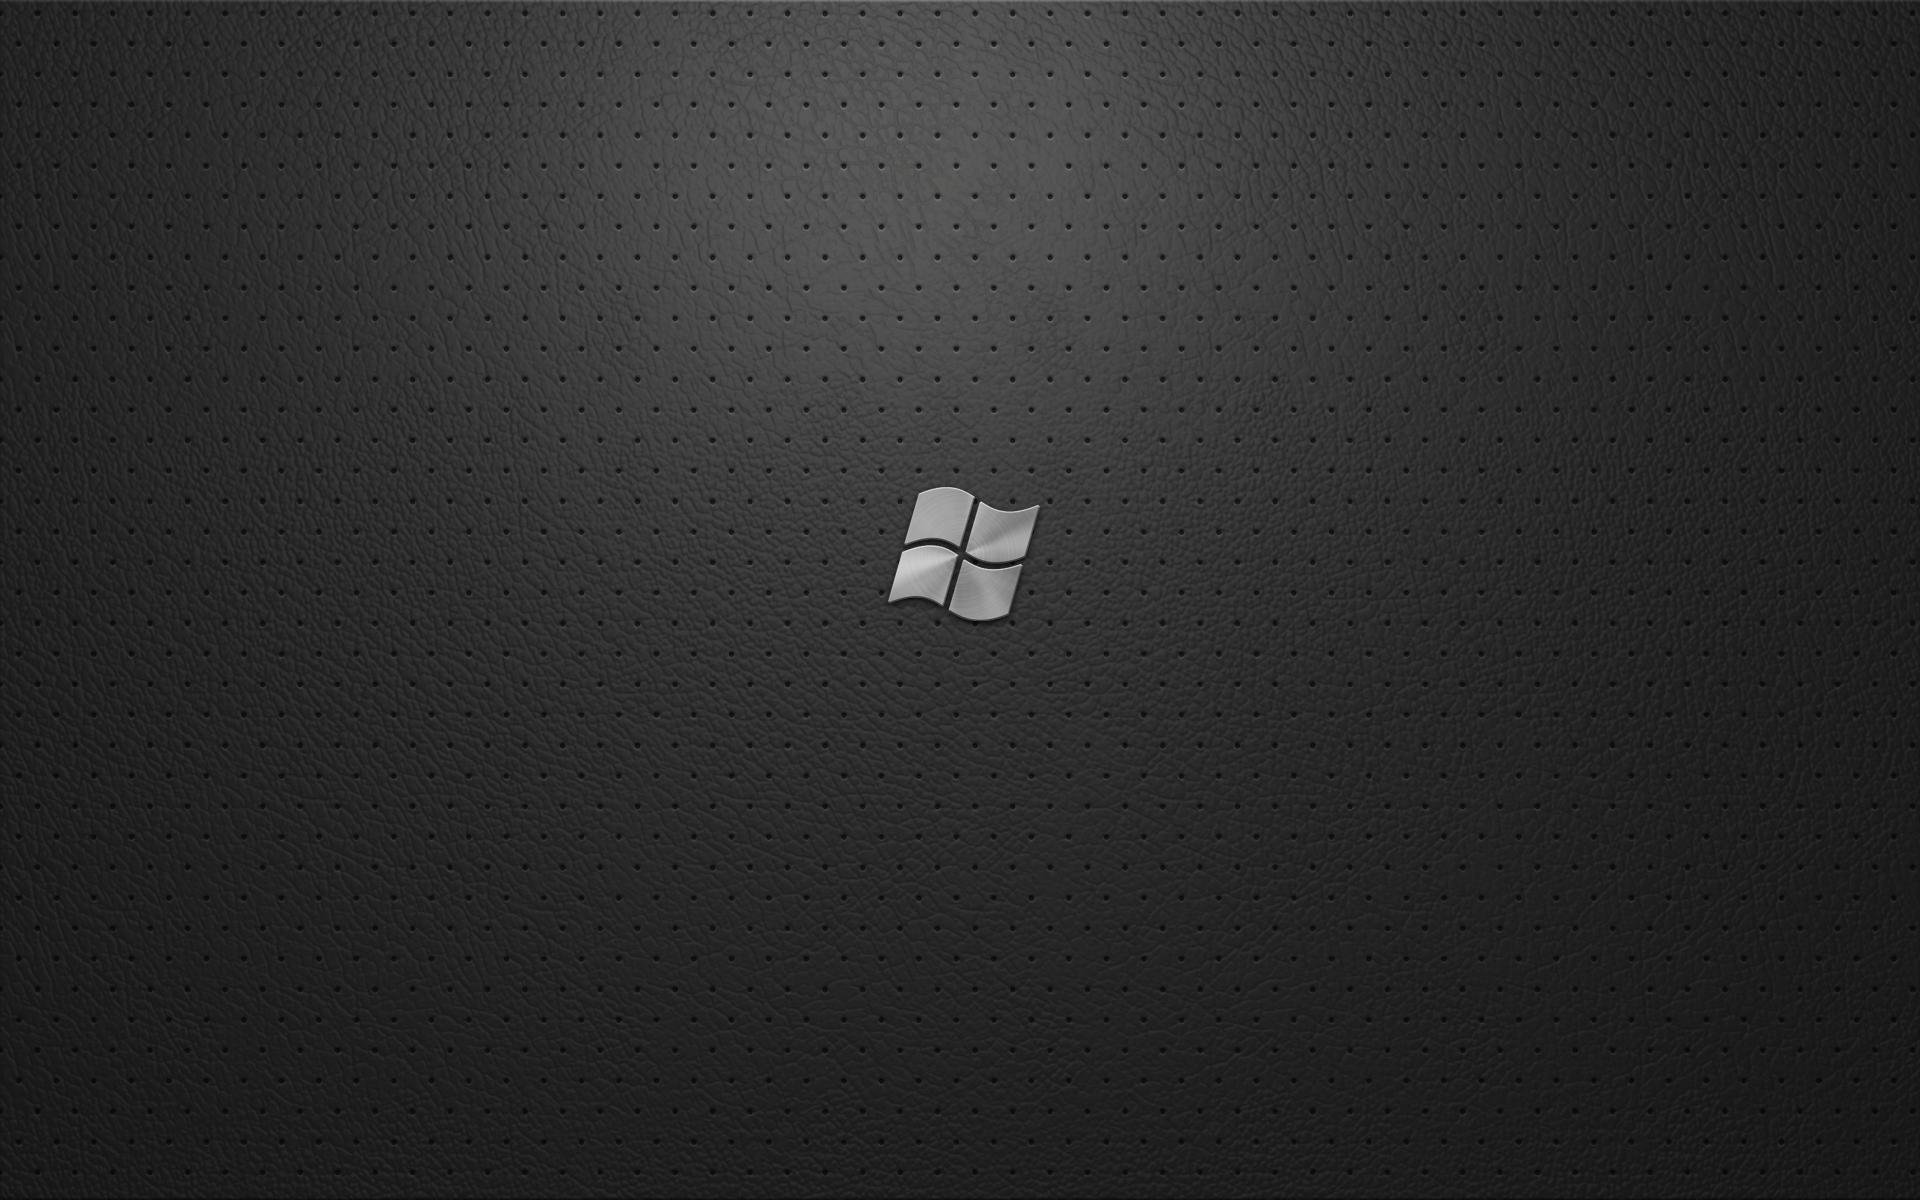 wallpapers for windows 7 background hd black